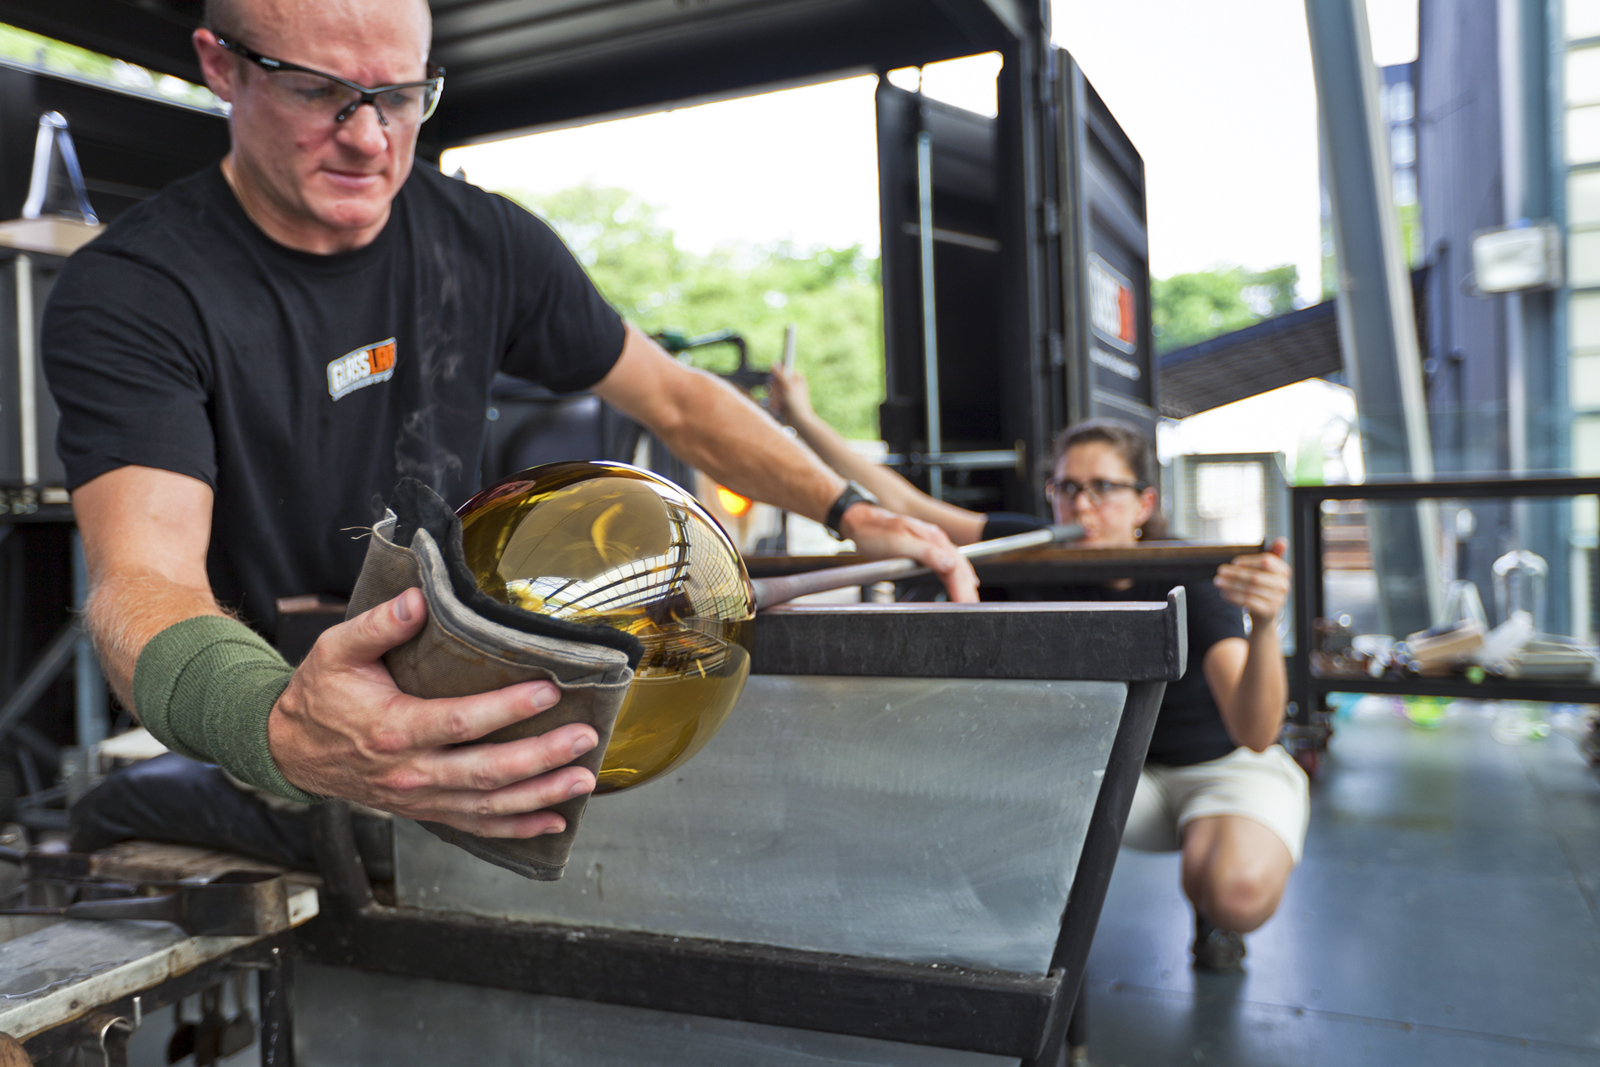 Glassmakers G Brian Juk and Annette Sheppard work with designer Jon Otis at GlassLab in Corning, July 2012